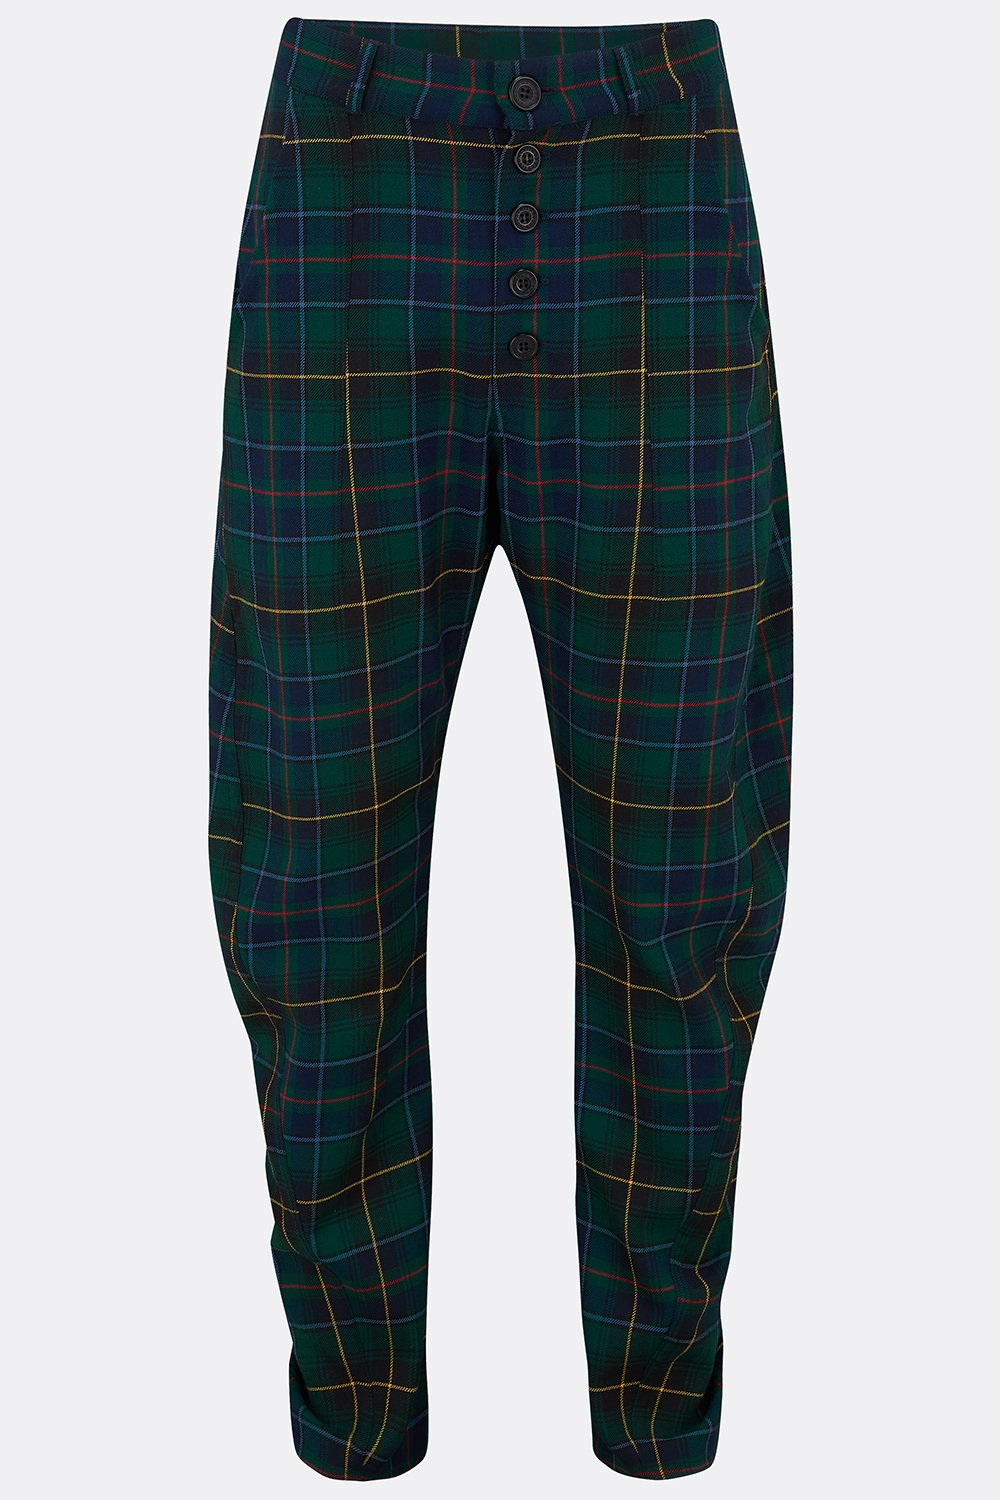 APACHE TROUSERS IN GREEN NAVY CHECK-menswear-A Child Of The Jago